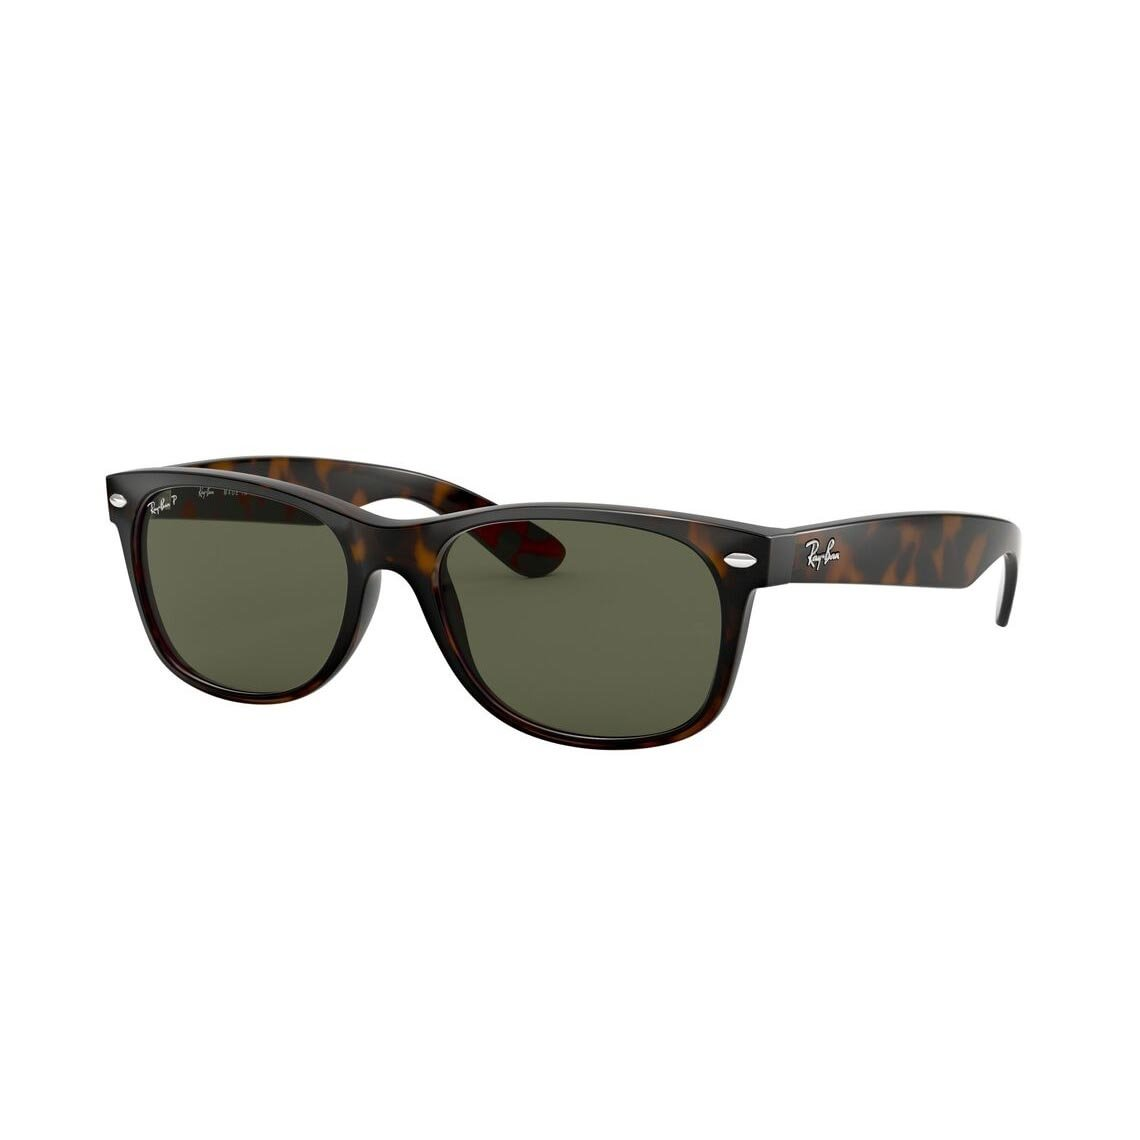 Ray-Ban New Wayfarer RB2132 902/58 55